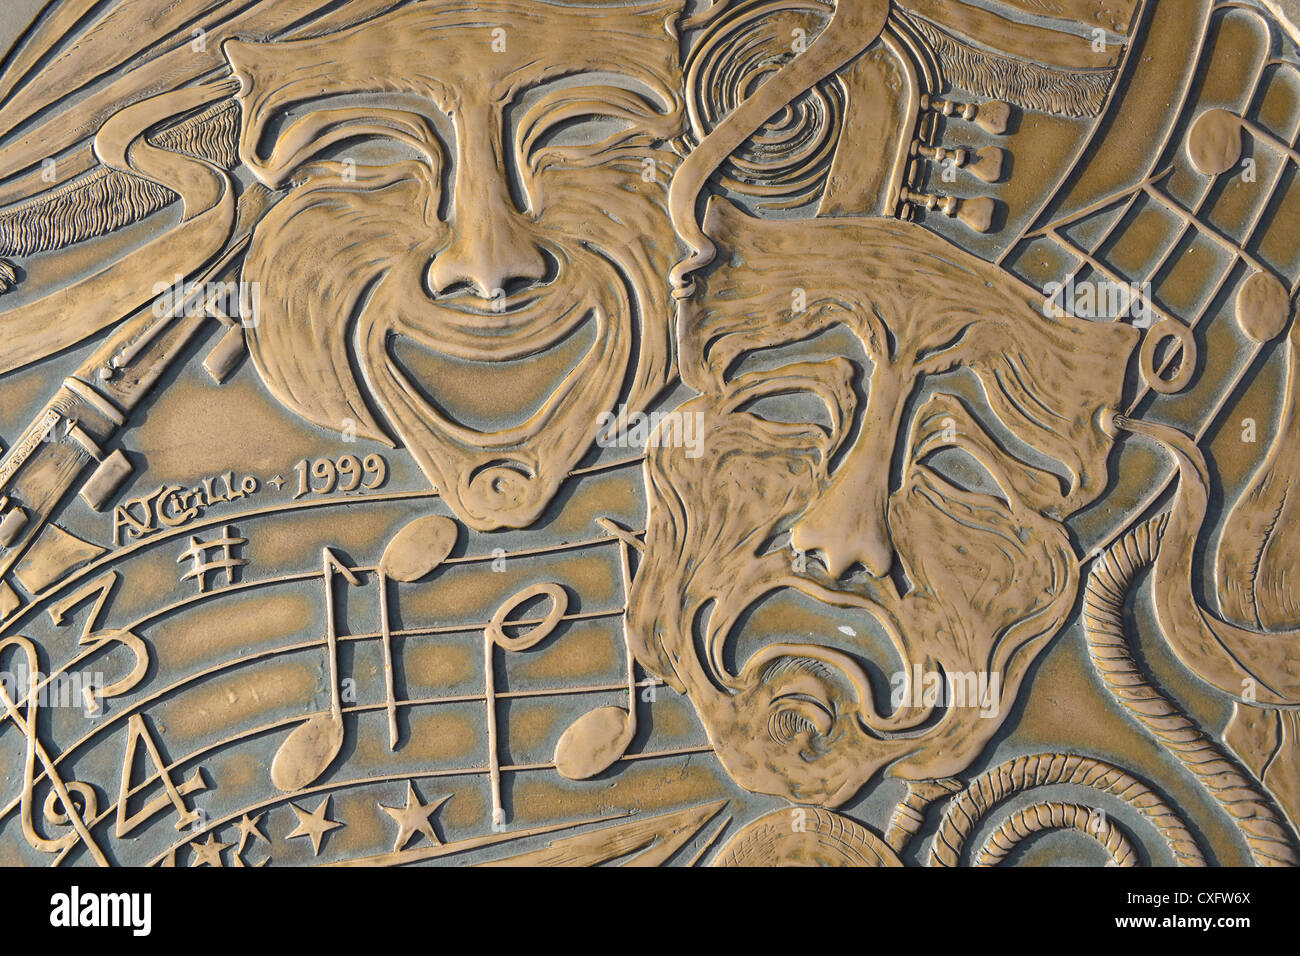 The faces of comedy and tragedy, symbol of drama, cast into the paving of a pedestrian street in Harrogate. - Stock Image